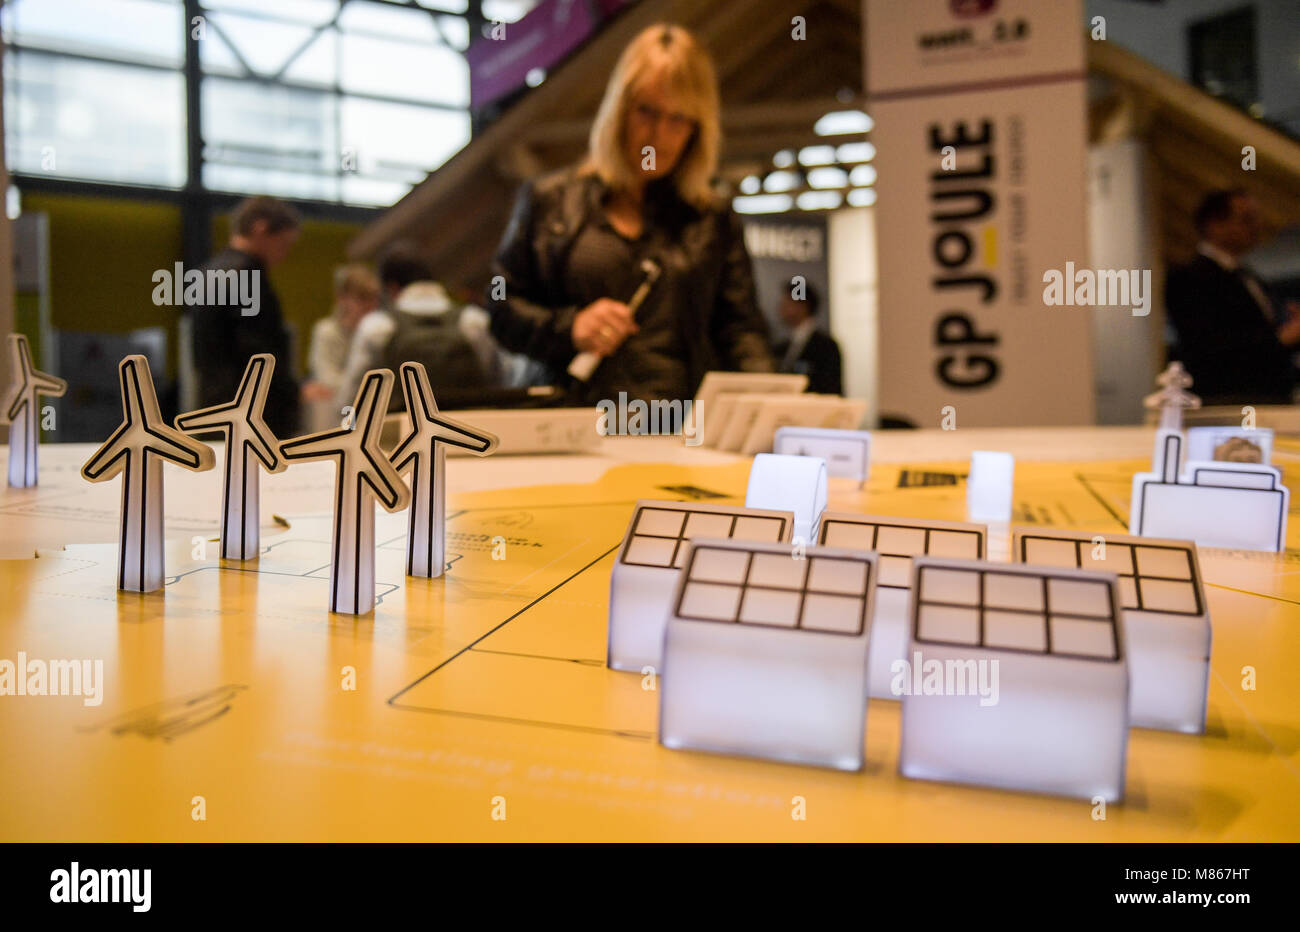 Husum, Germany. 15 March 2018,A woman looking at the schematics of an energy supply system at the fair New Energy - Stock Image